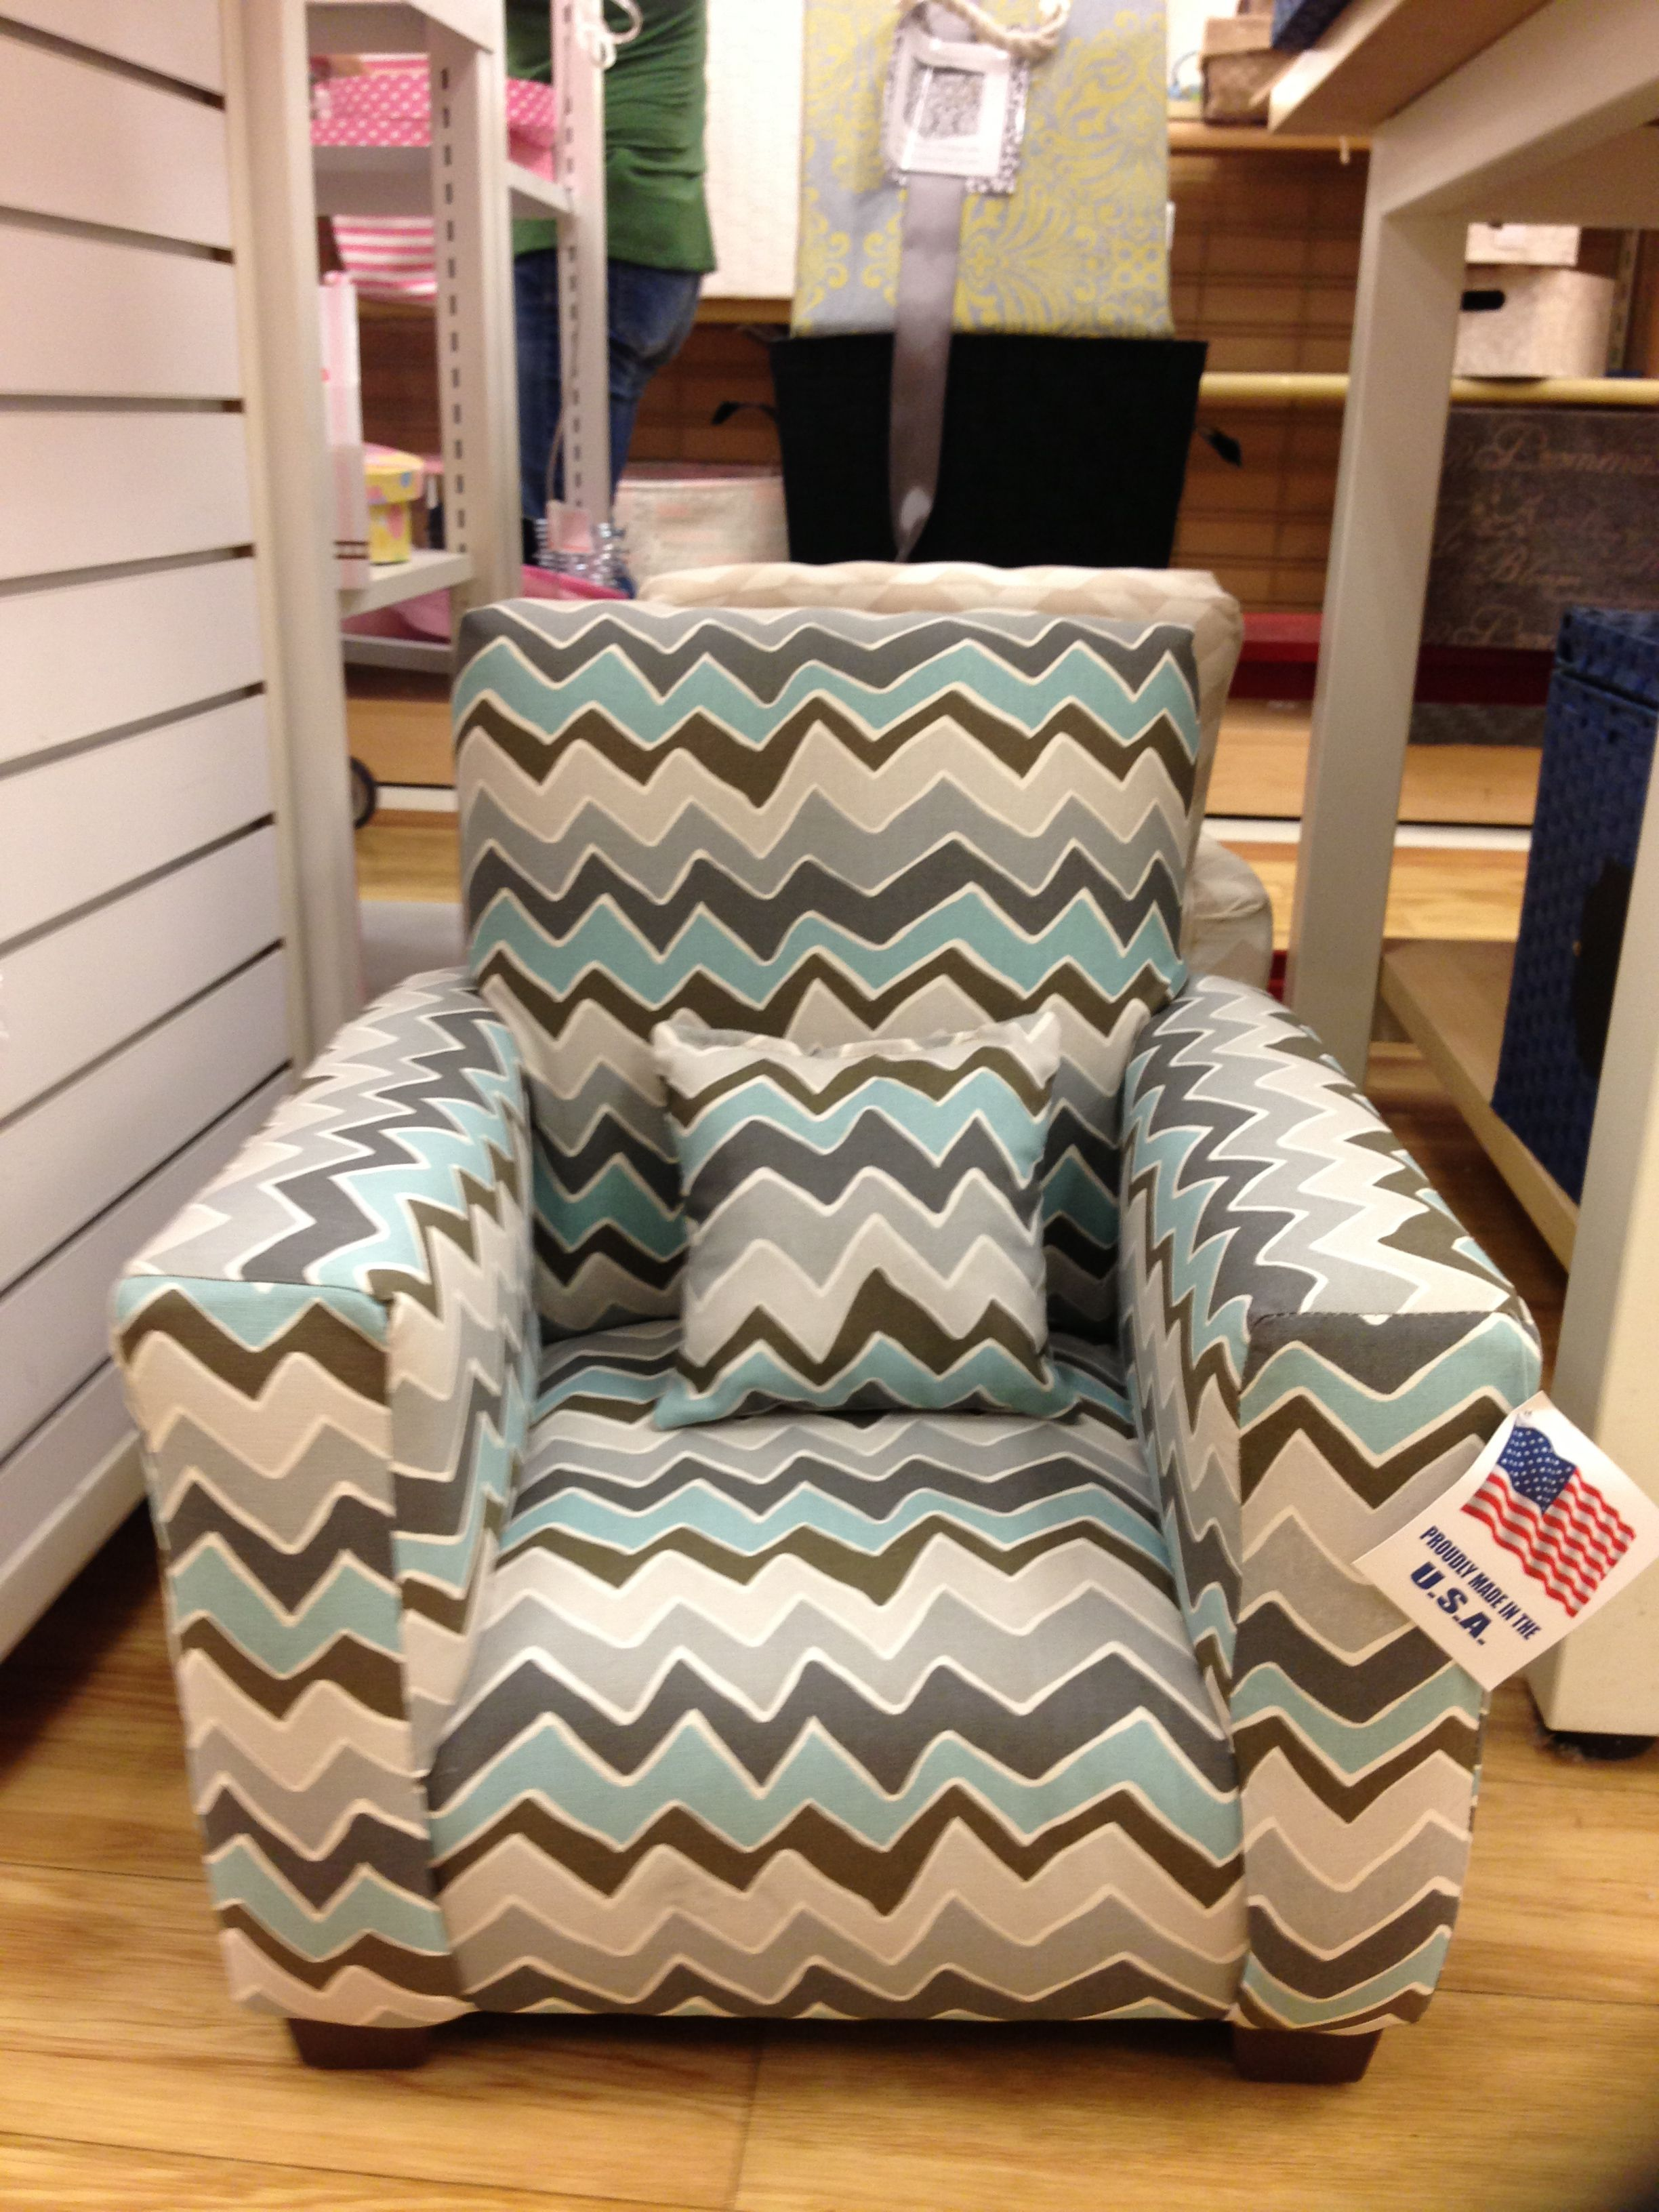 Best Kids Chair At Marshall S Home Goods Kids Chairs Home 640 x 480